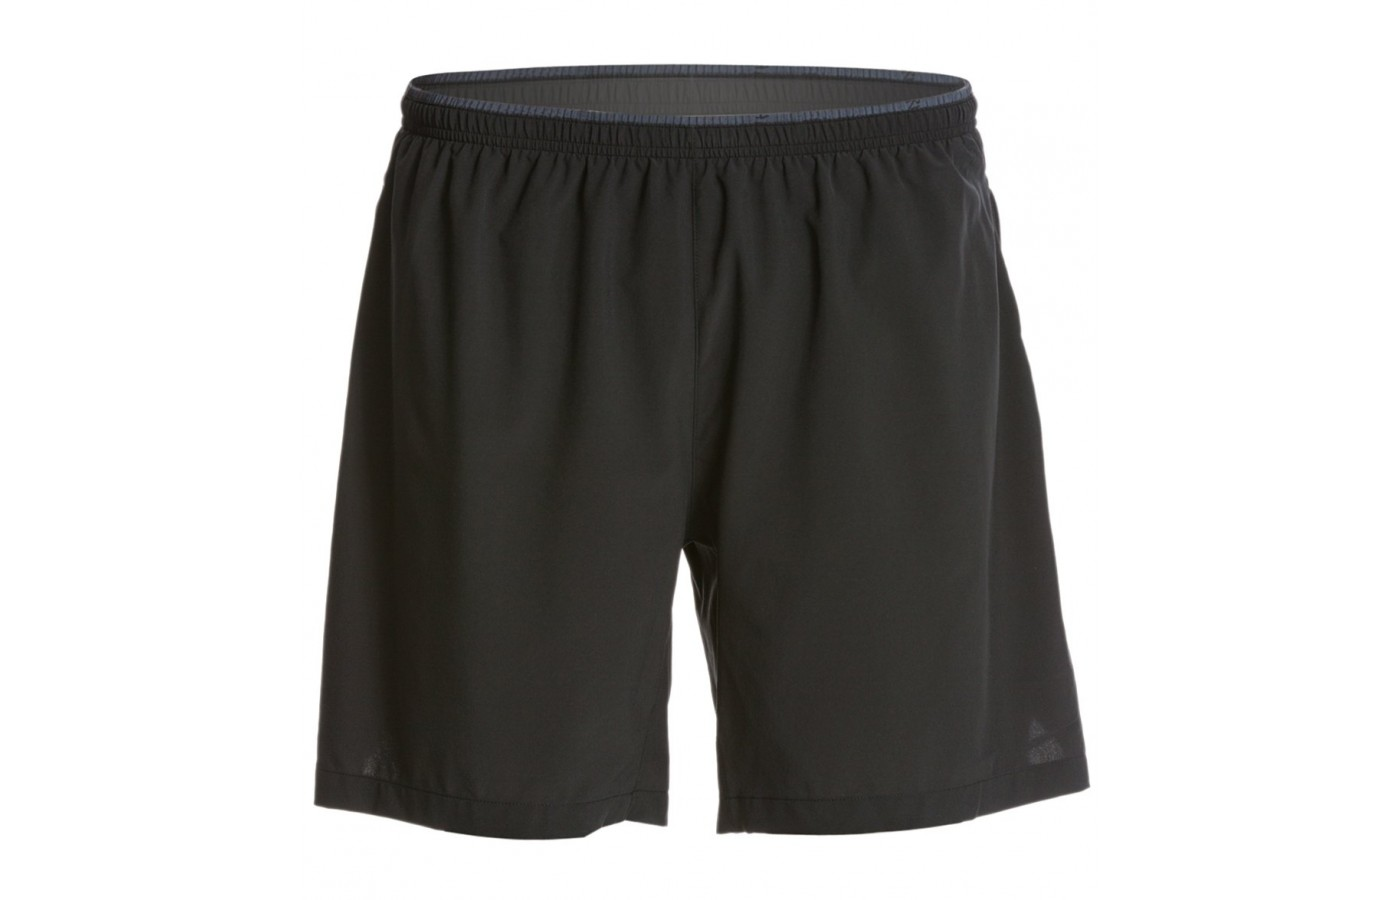 The 7-inch option of the Brooks Sherpa short.